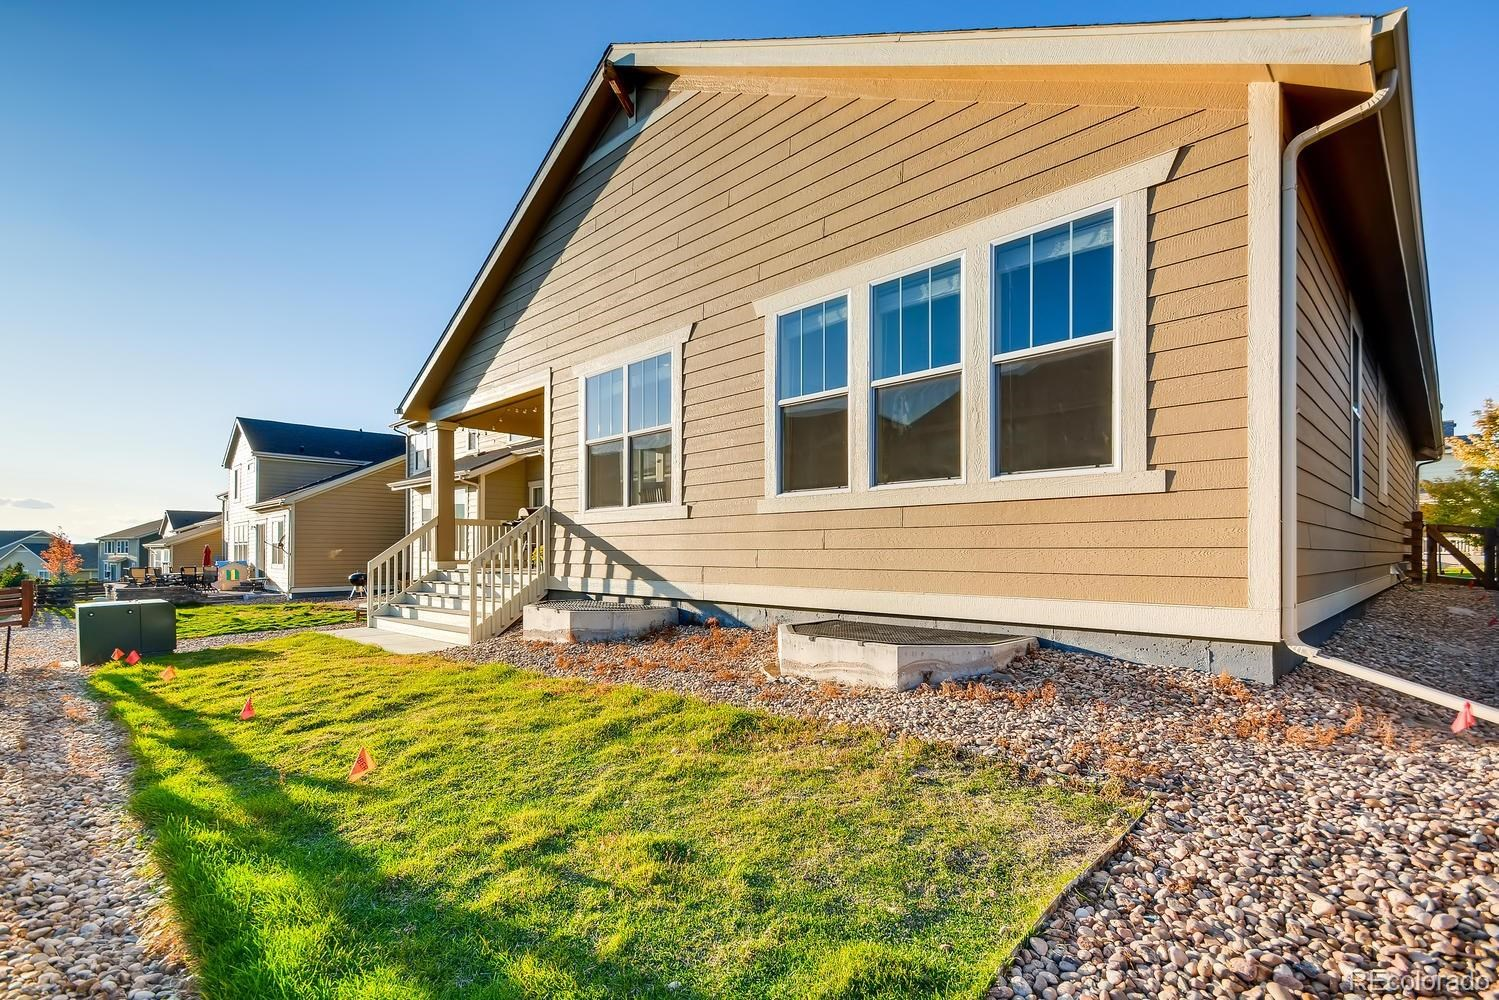 MLS# 9346696 - 28 - 22888 E Saratoga Place, Aurora, CO 80015